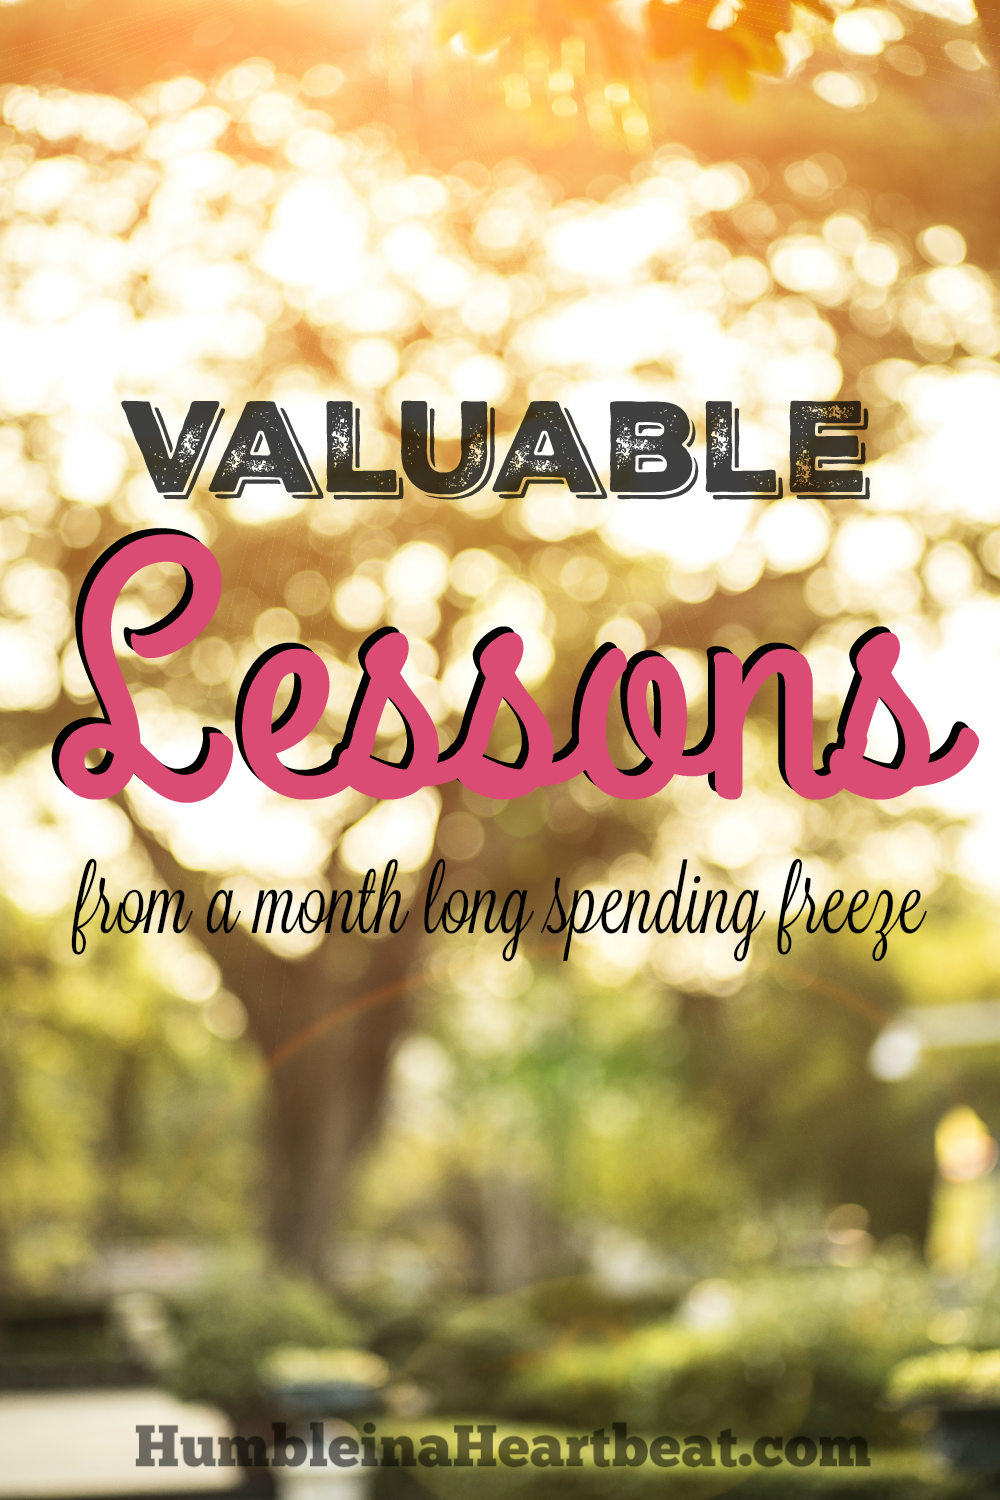 Your life can be better and you can be changed by participating in a spending freeze. These are the 4 lessons I took away from a month long spending freeze.